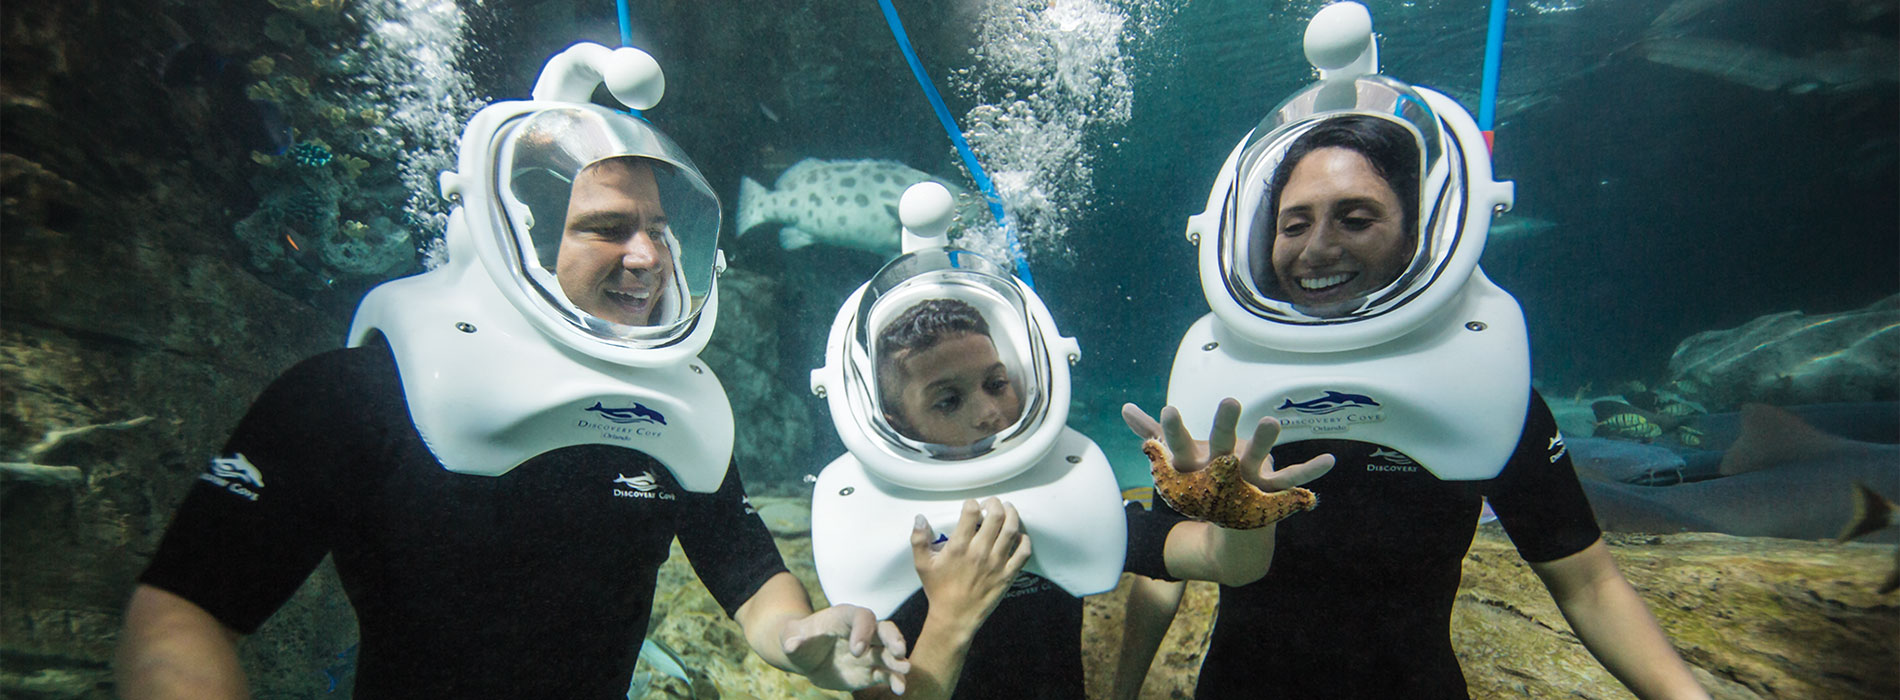 6 top tips for making the most of Discovery Cove